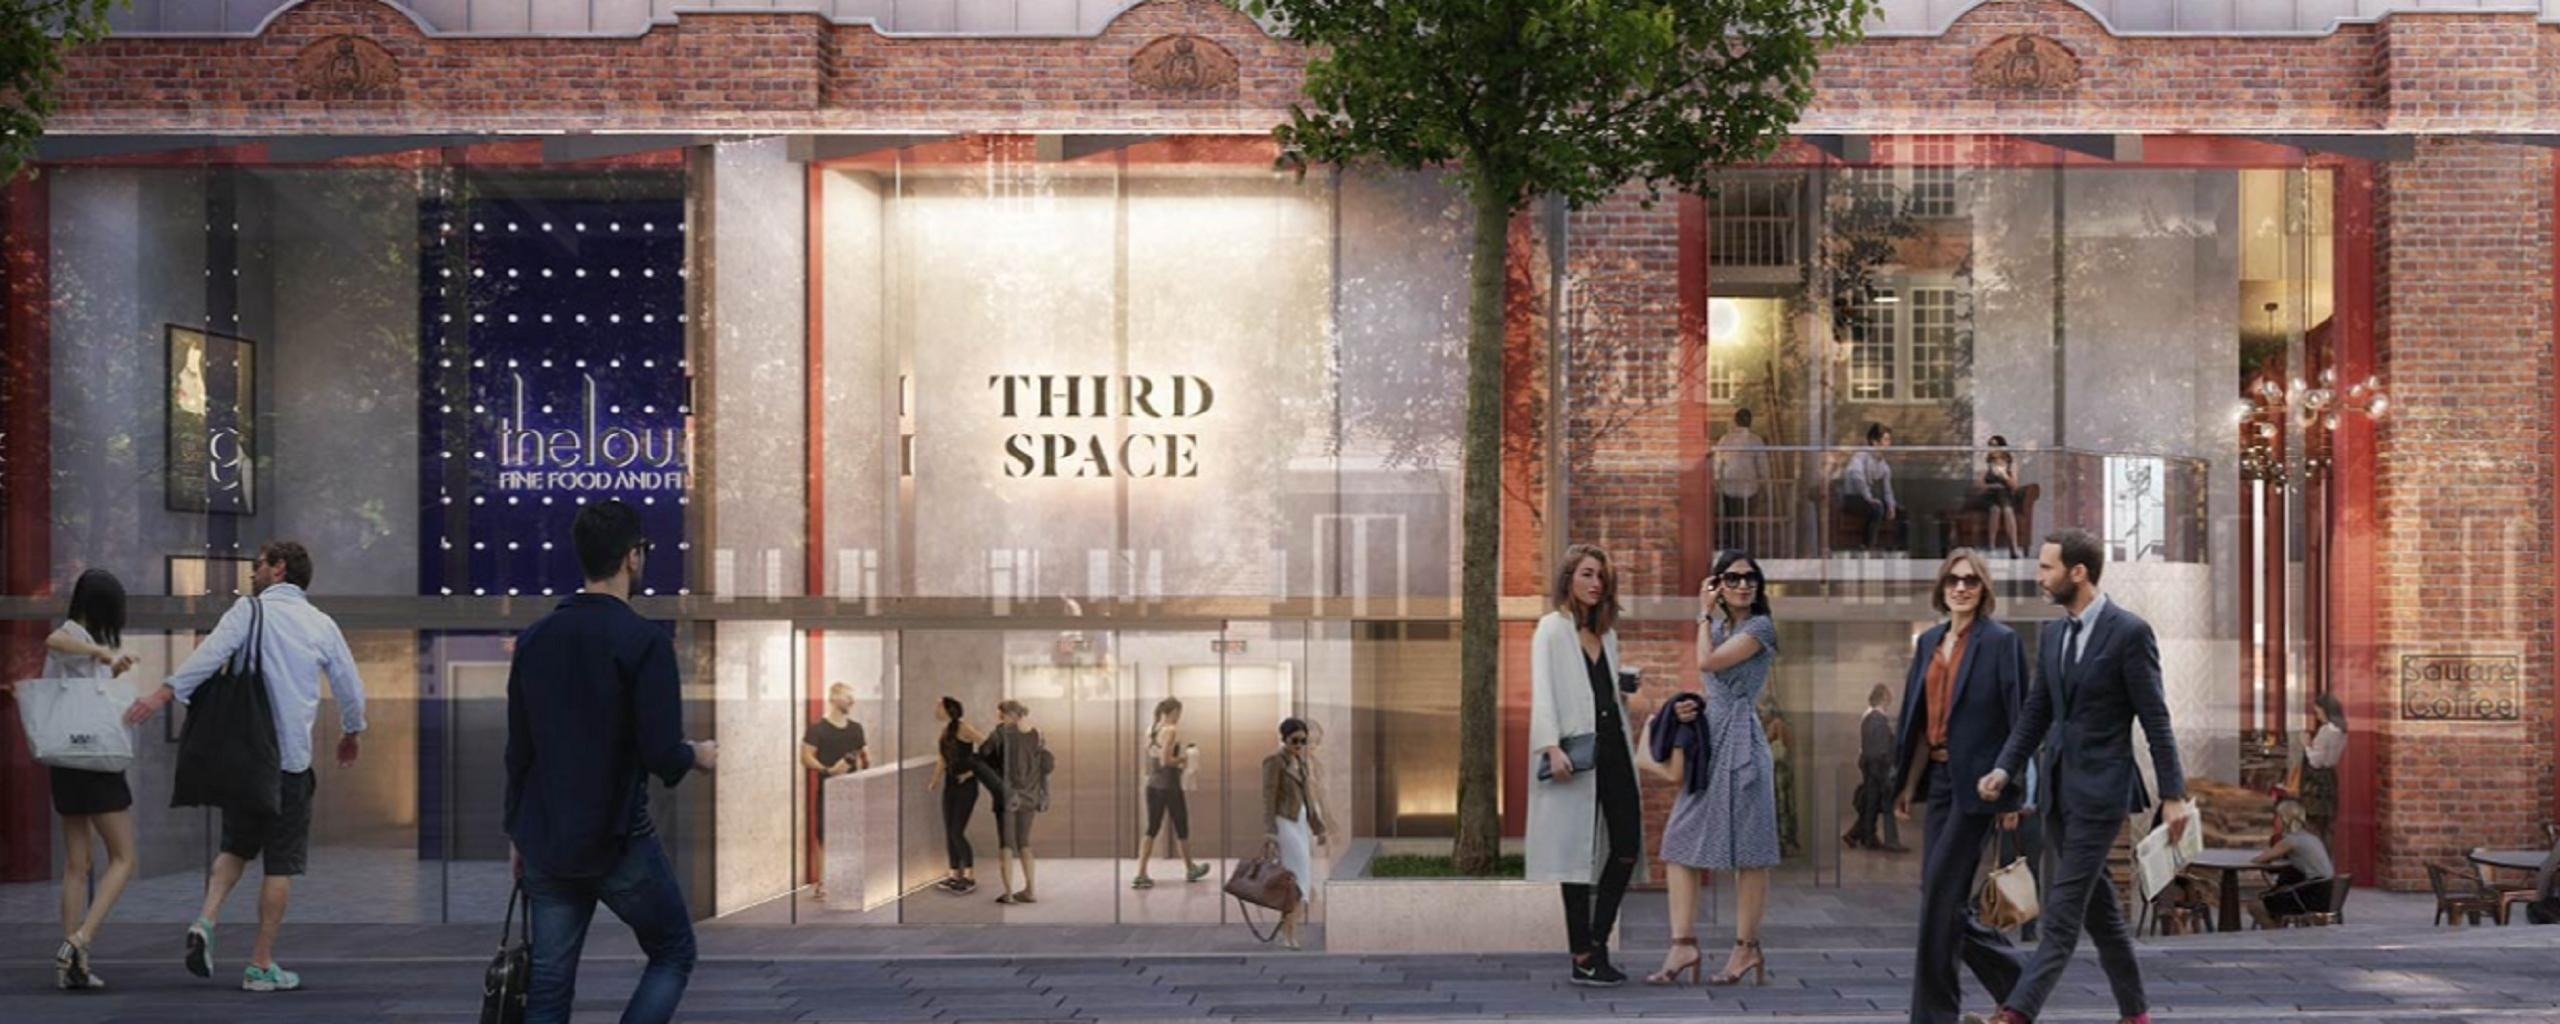 Third Space - Marketing Brand Cover